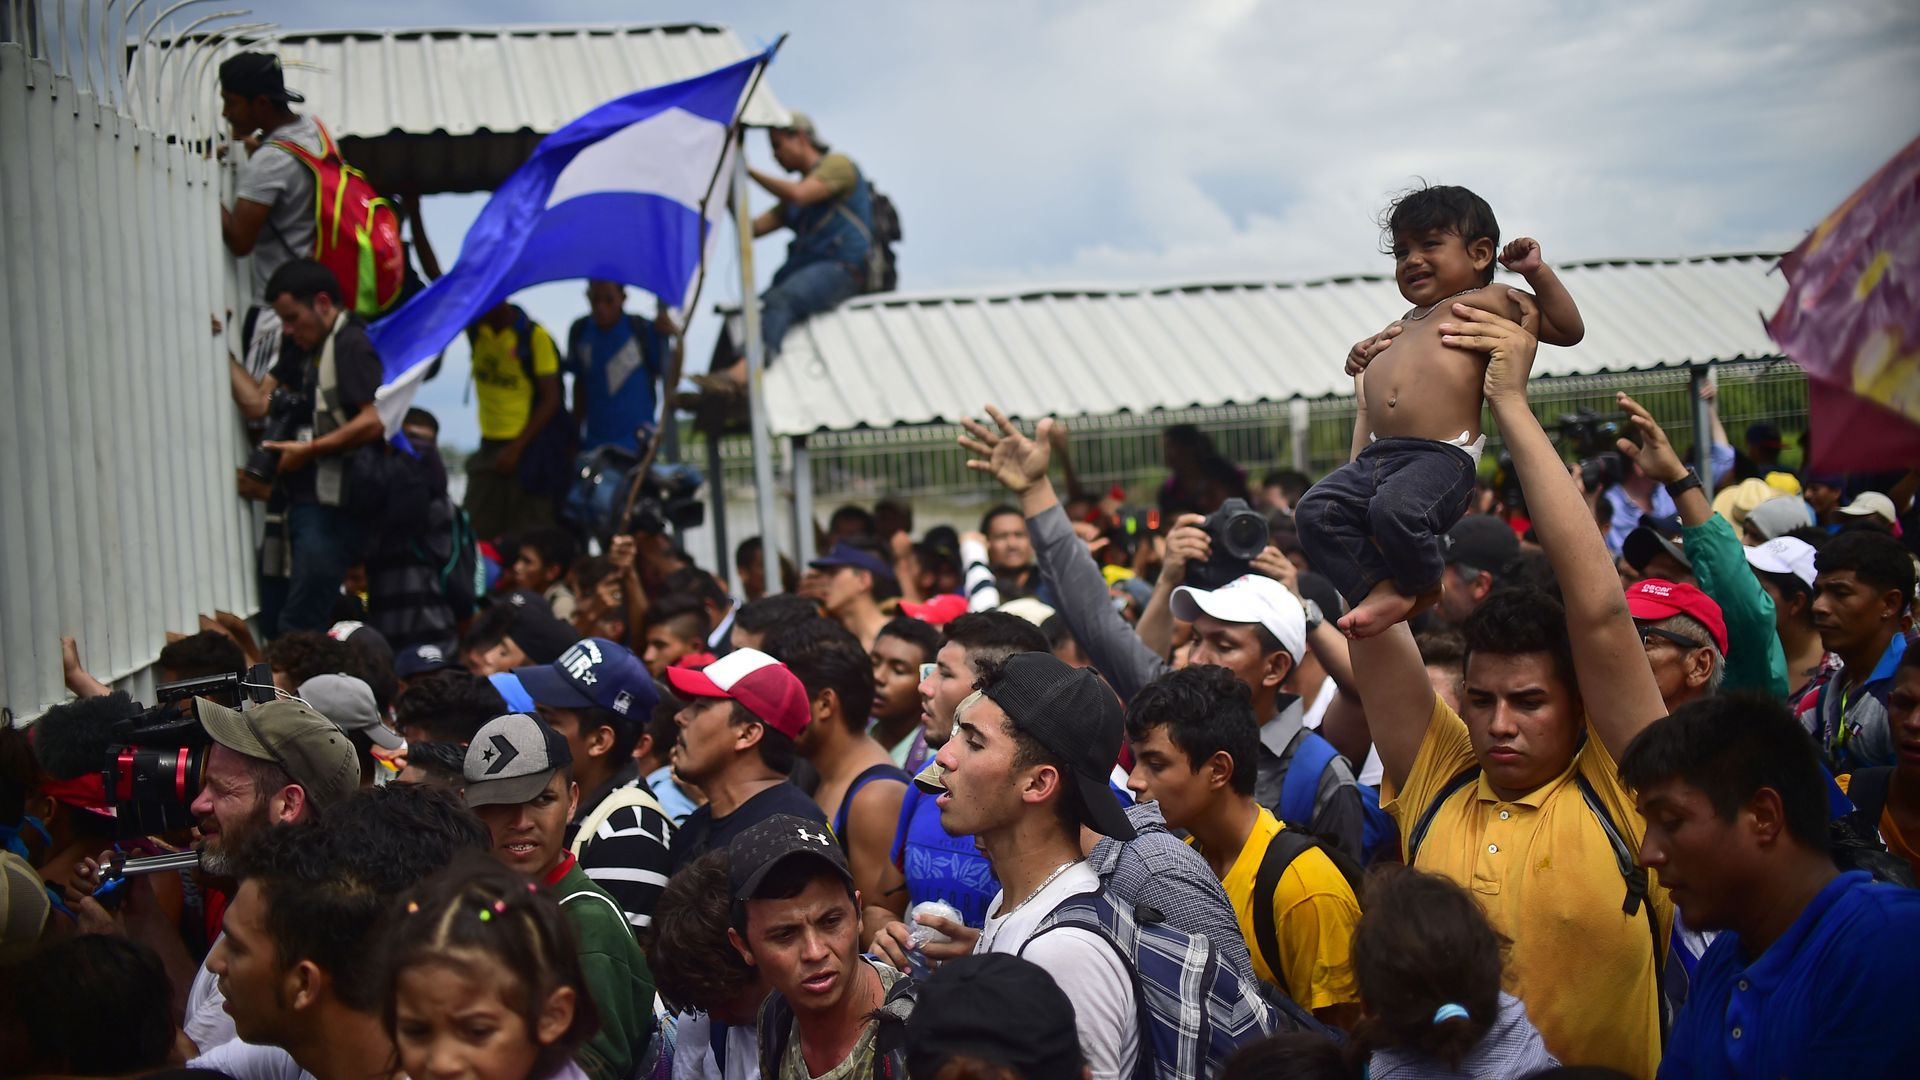 Hondurans in caravan jump the gate to Mexico